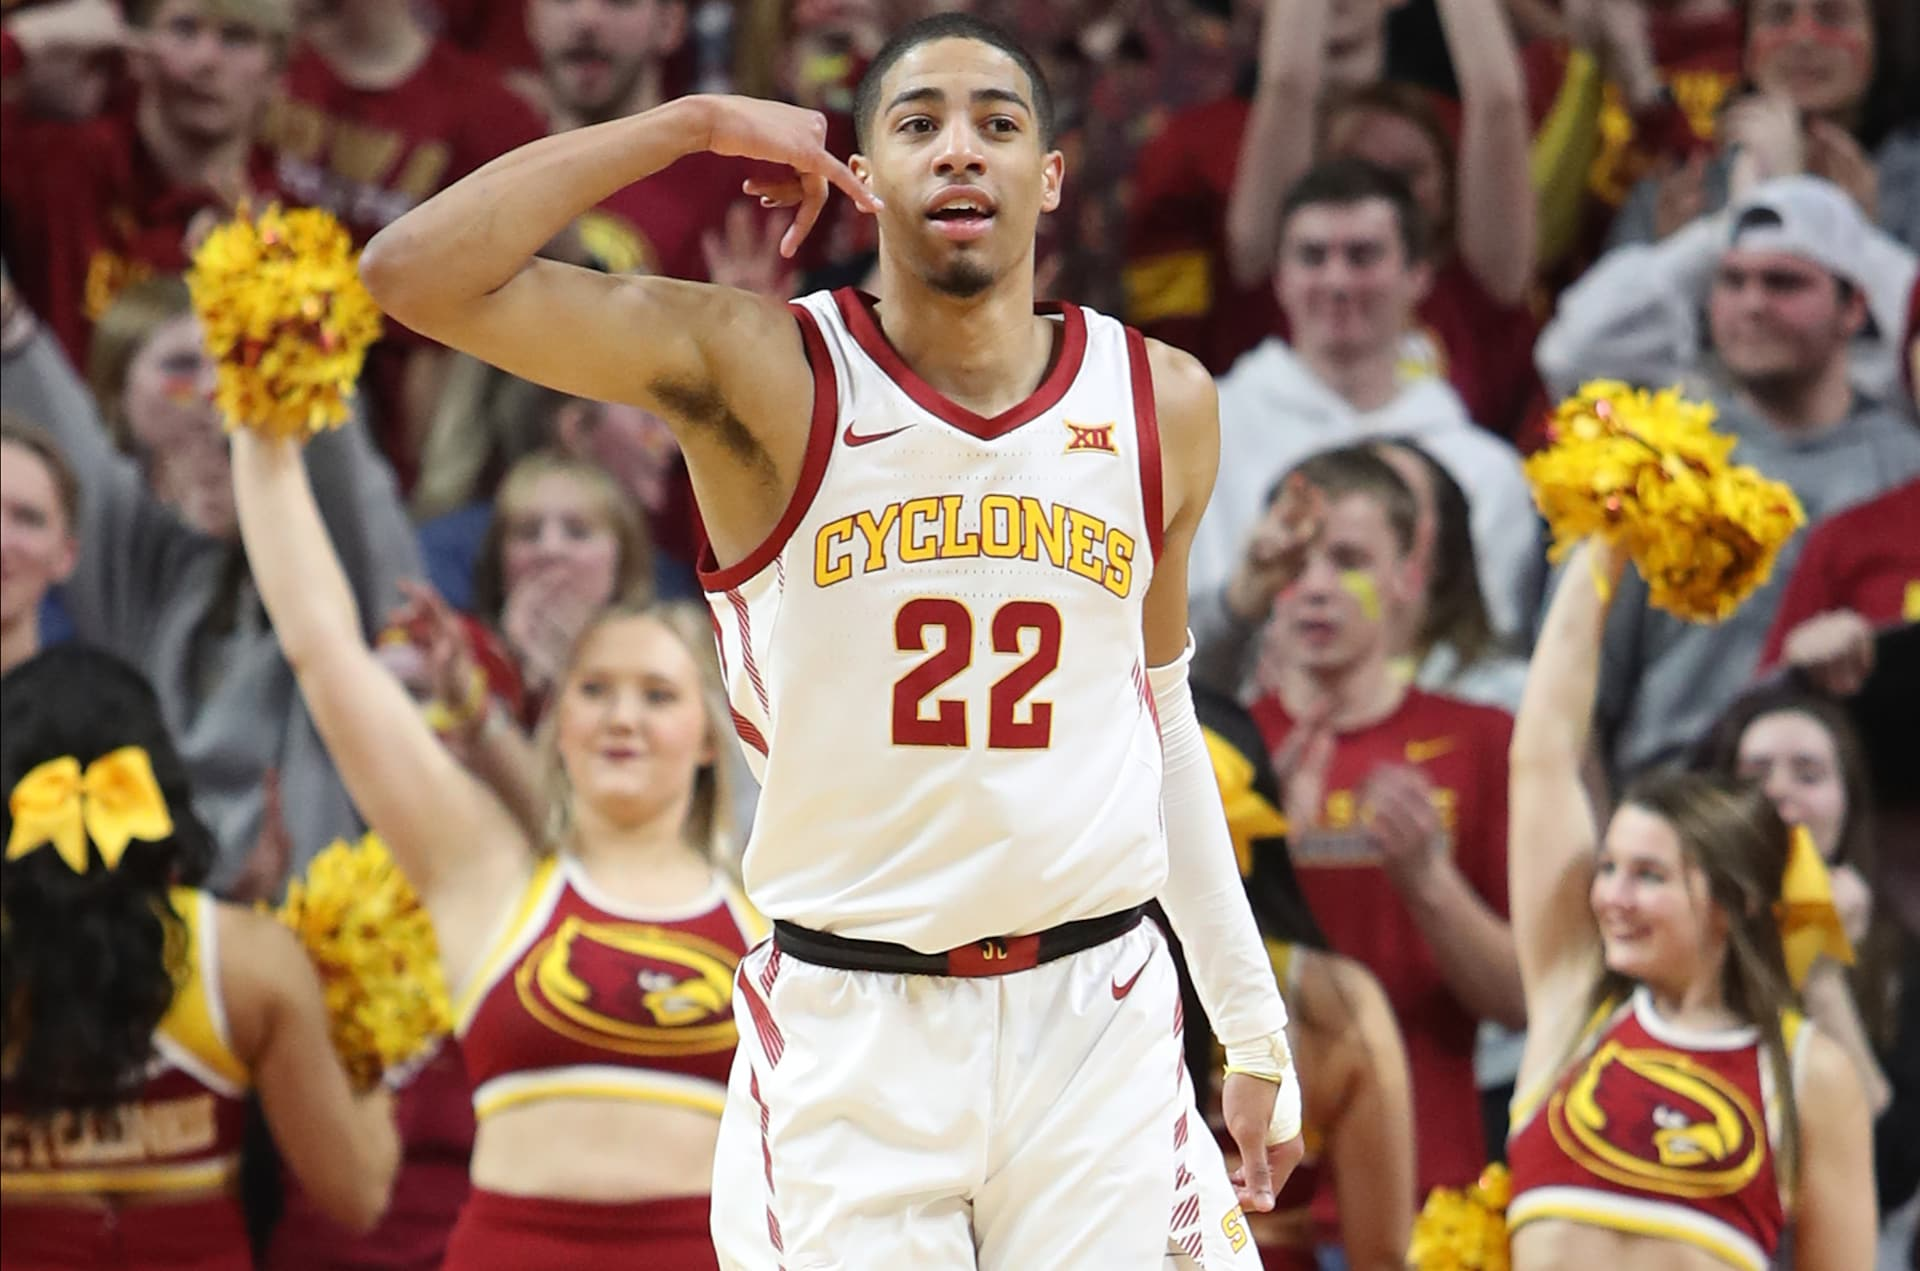 Making his point: The rapid rise of Tyrese Haliburton